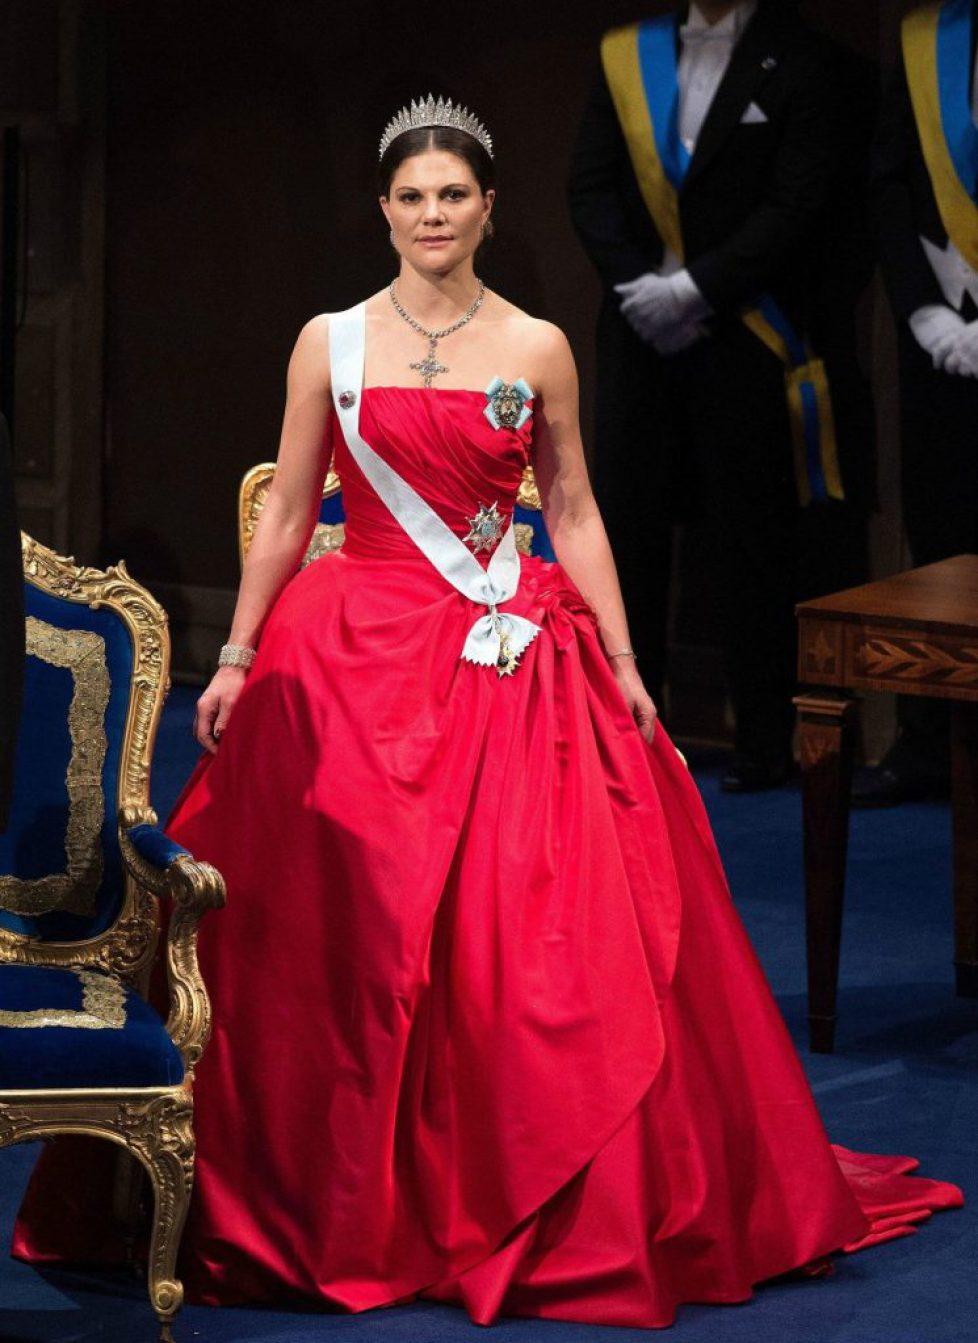 fashion-2014-12-princess-victoria-nobel-peace-prize-stockholm-2014-main